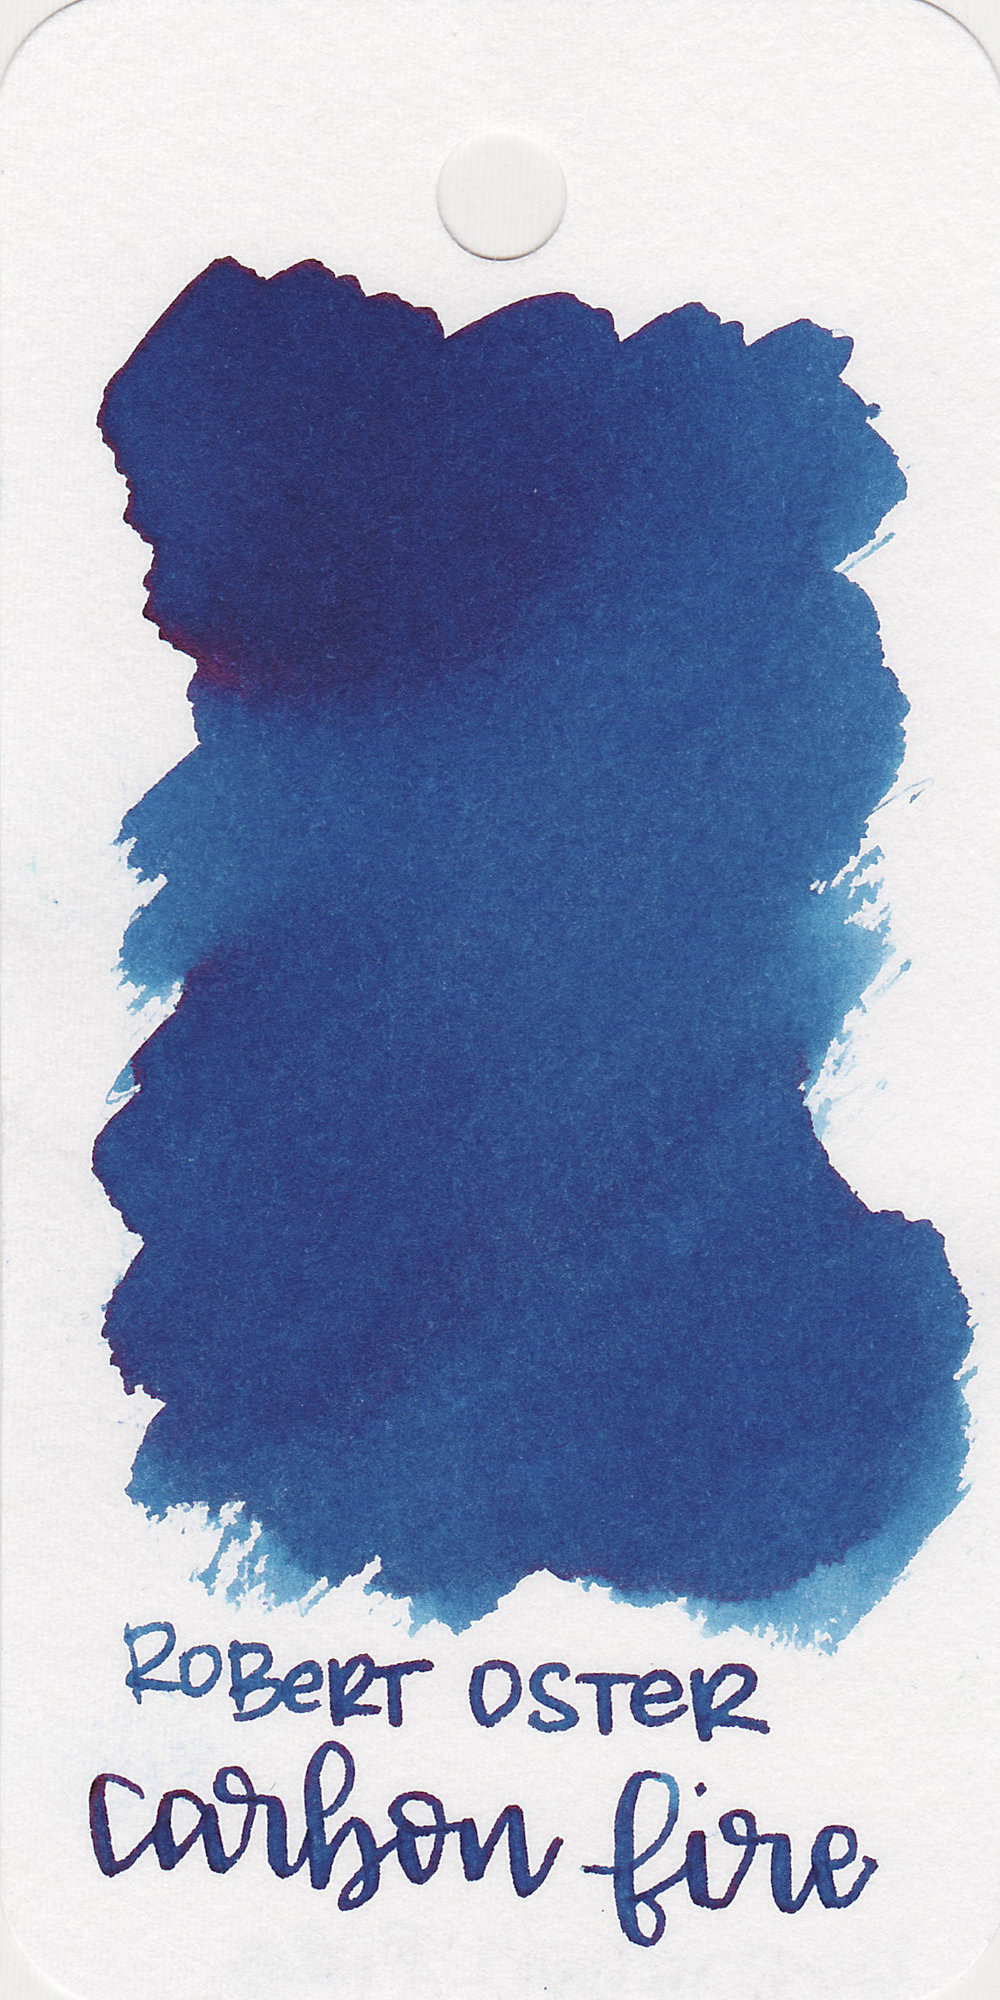 RO Carbon Fire - This ink is a recent release, but you can't go wrong with any of Robert Oster's blues.